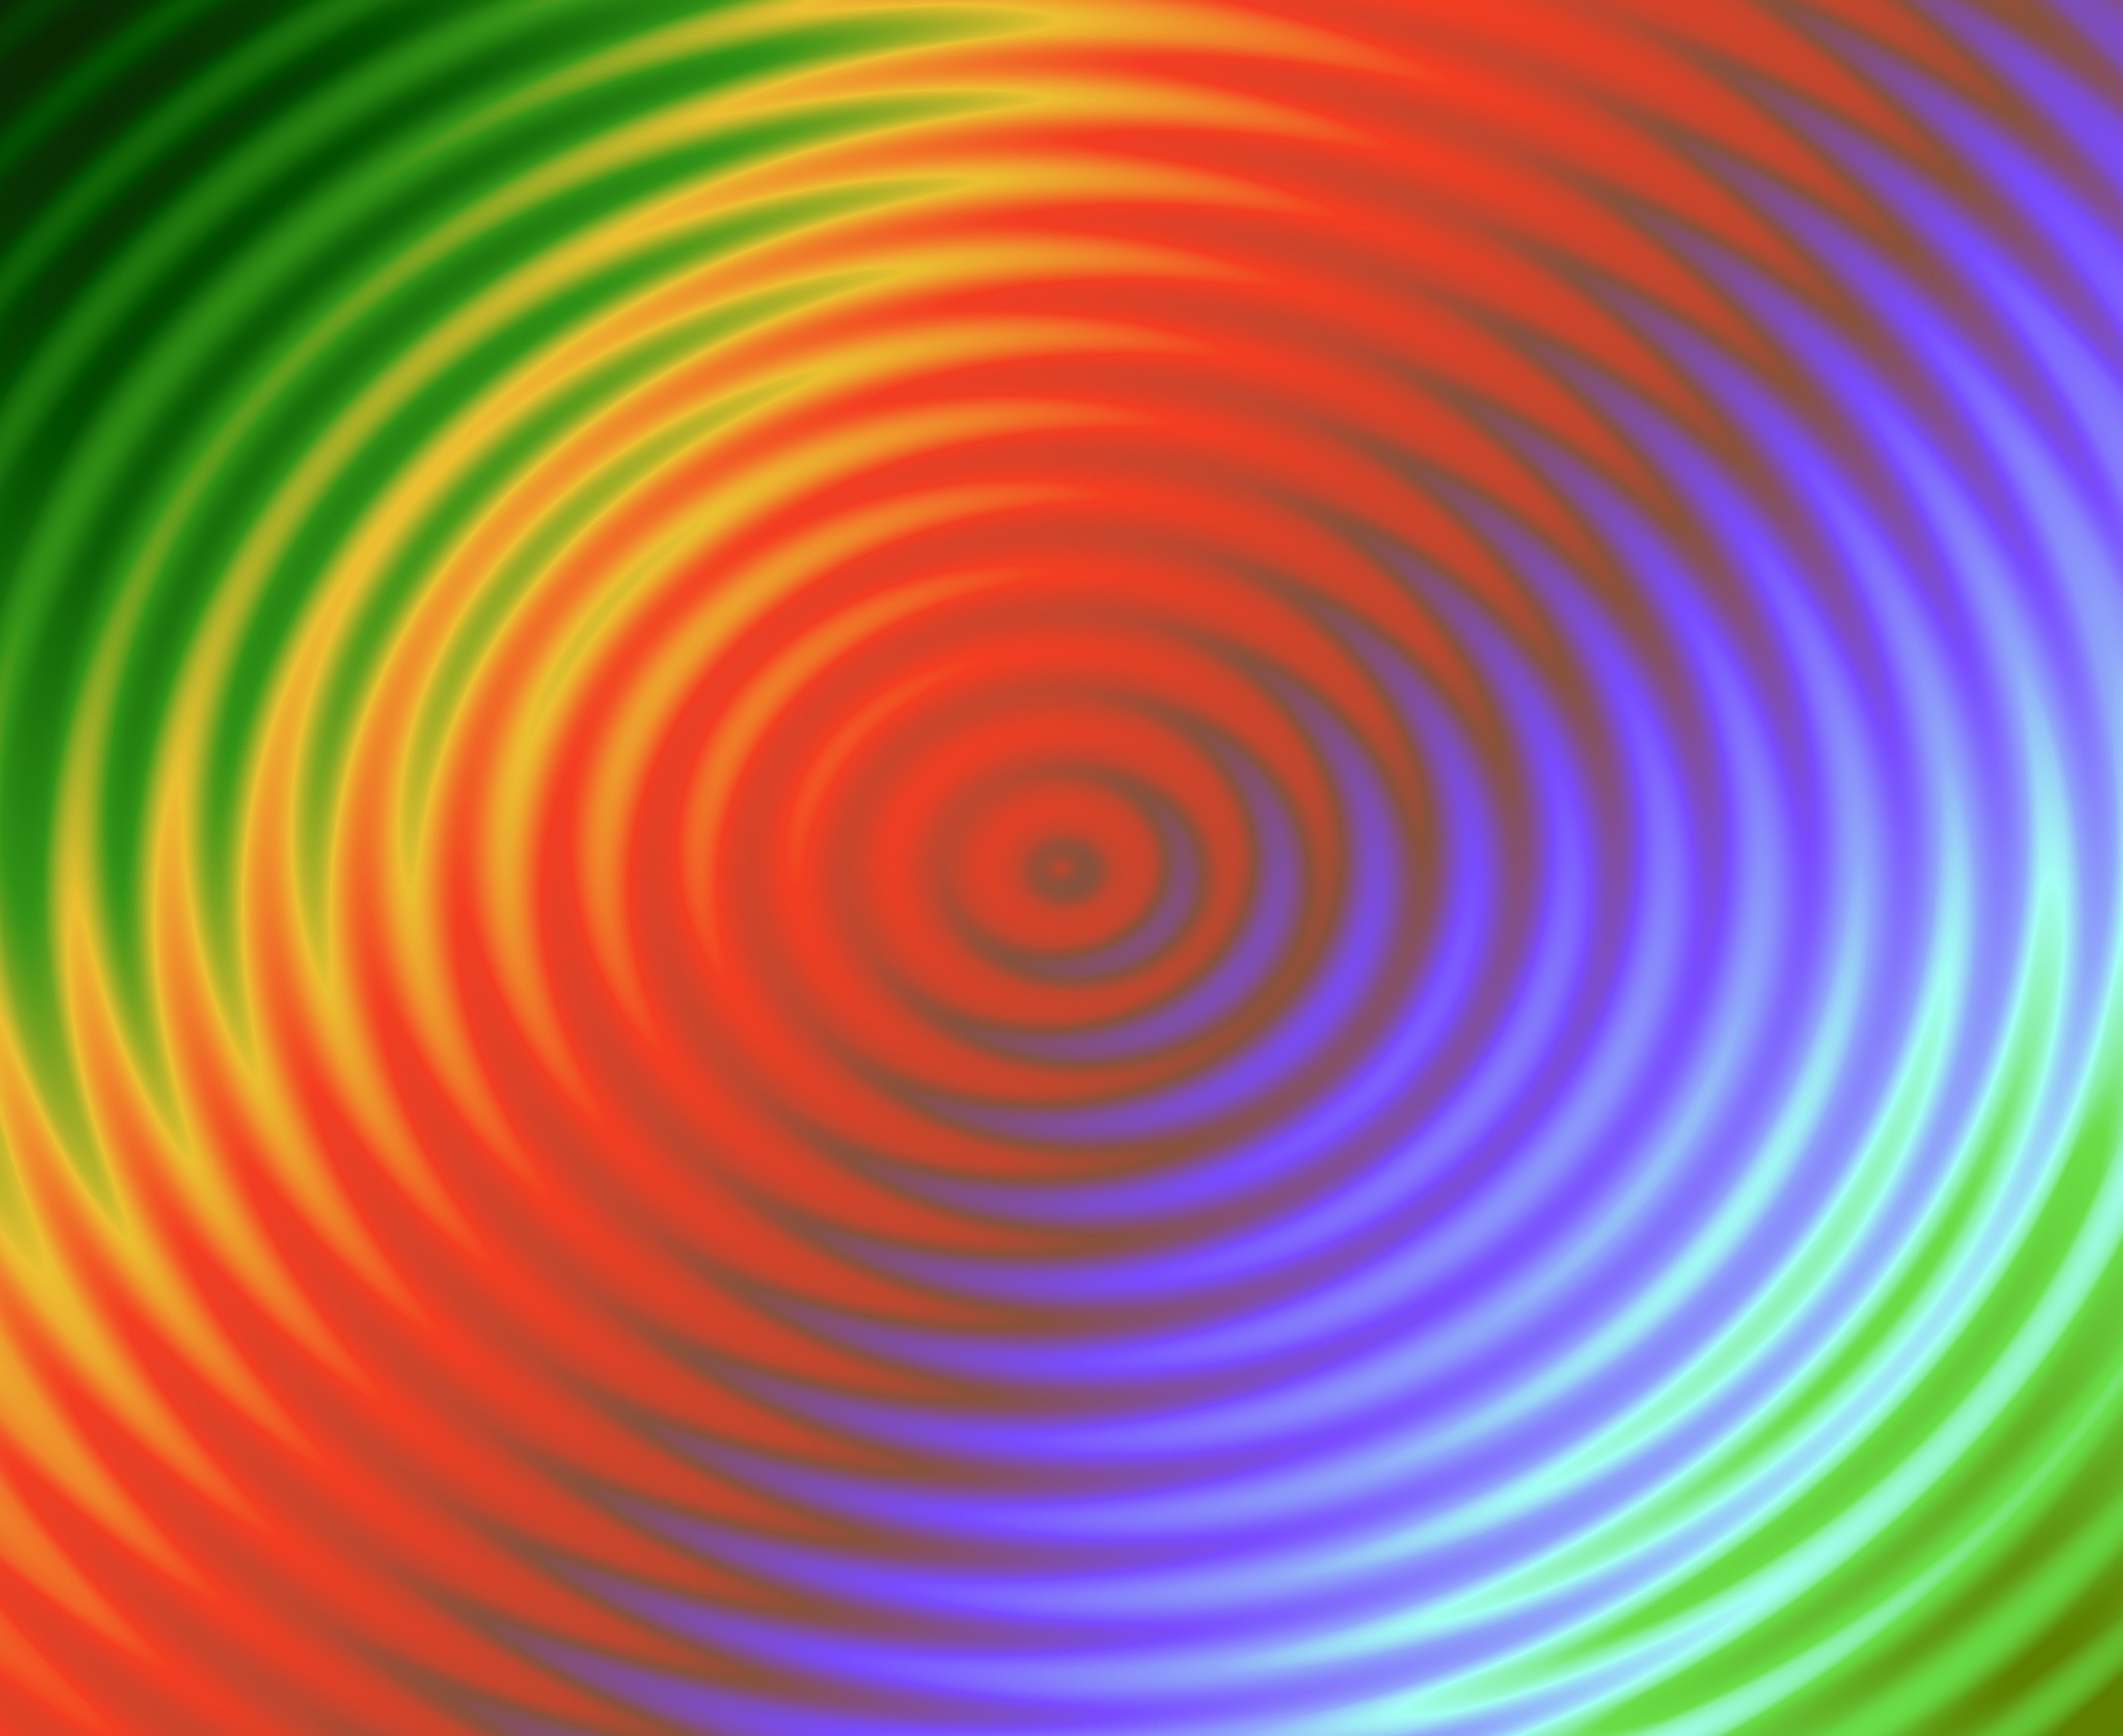 wave atmosphere line green color circle background image rainbow rings  shape repetition waves circles computer wallpaper